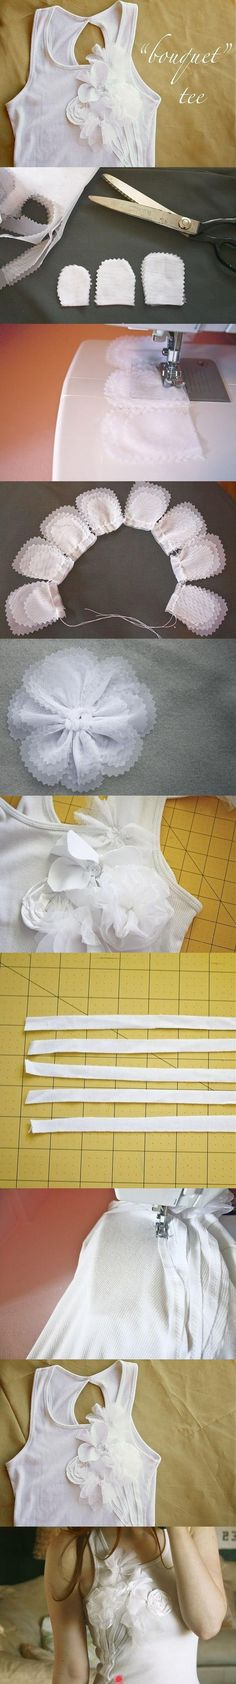 DIY Tee Shirt crafts